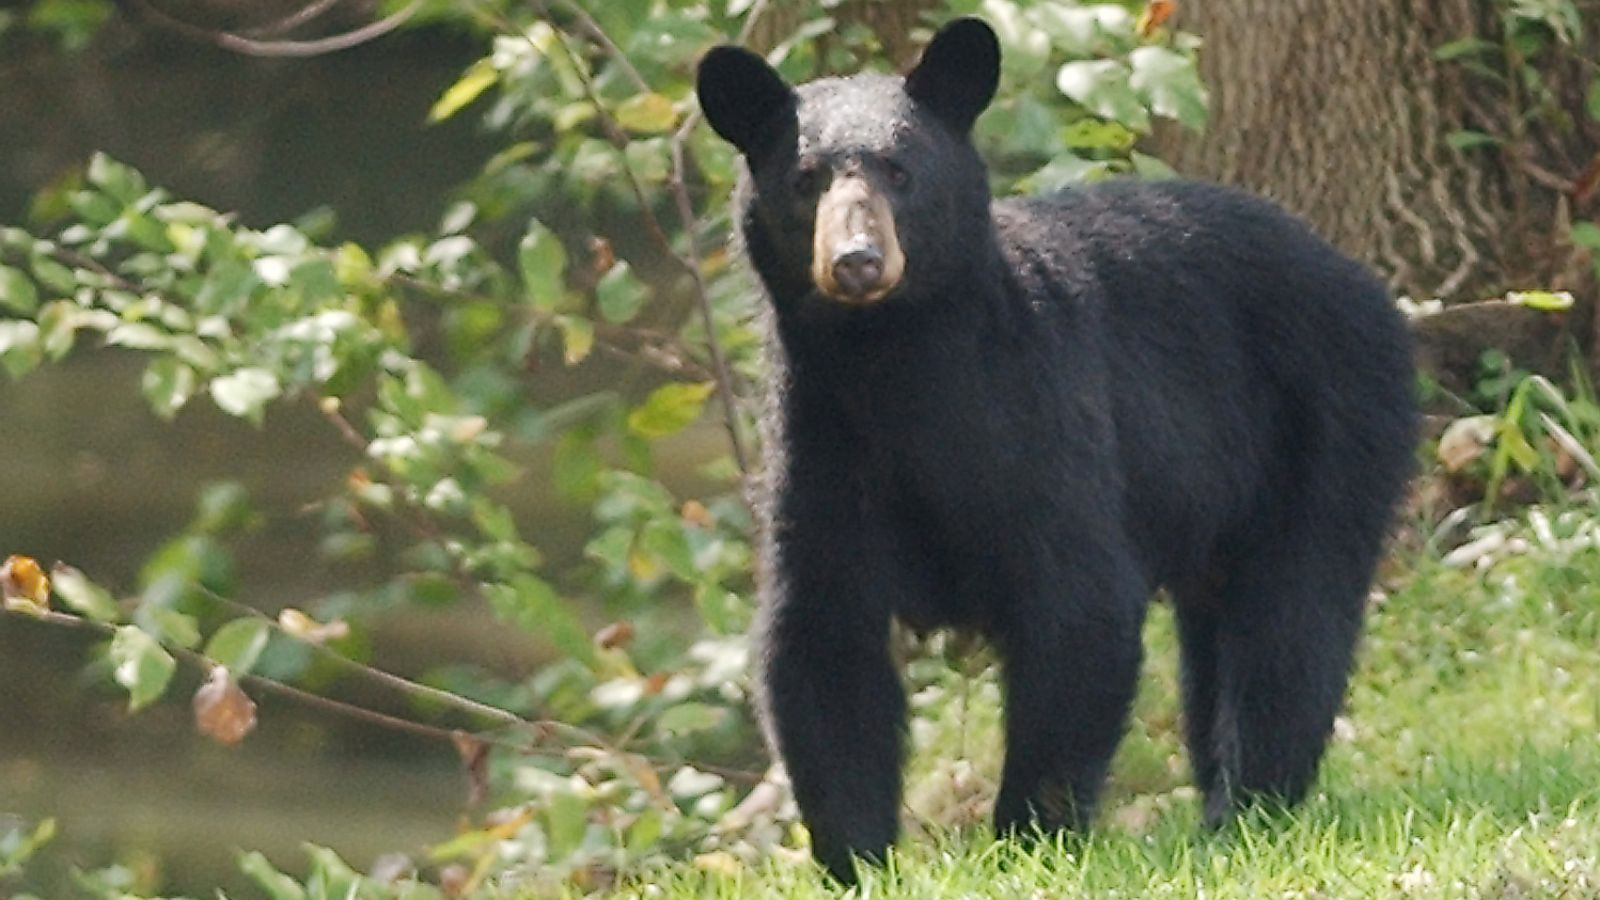 TWRA Officials Euthanize Bear Found Near Human Remains of Missing Walland Man